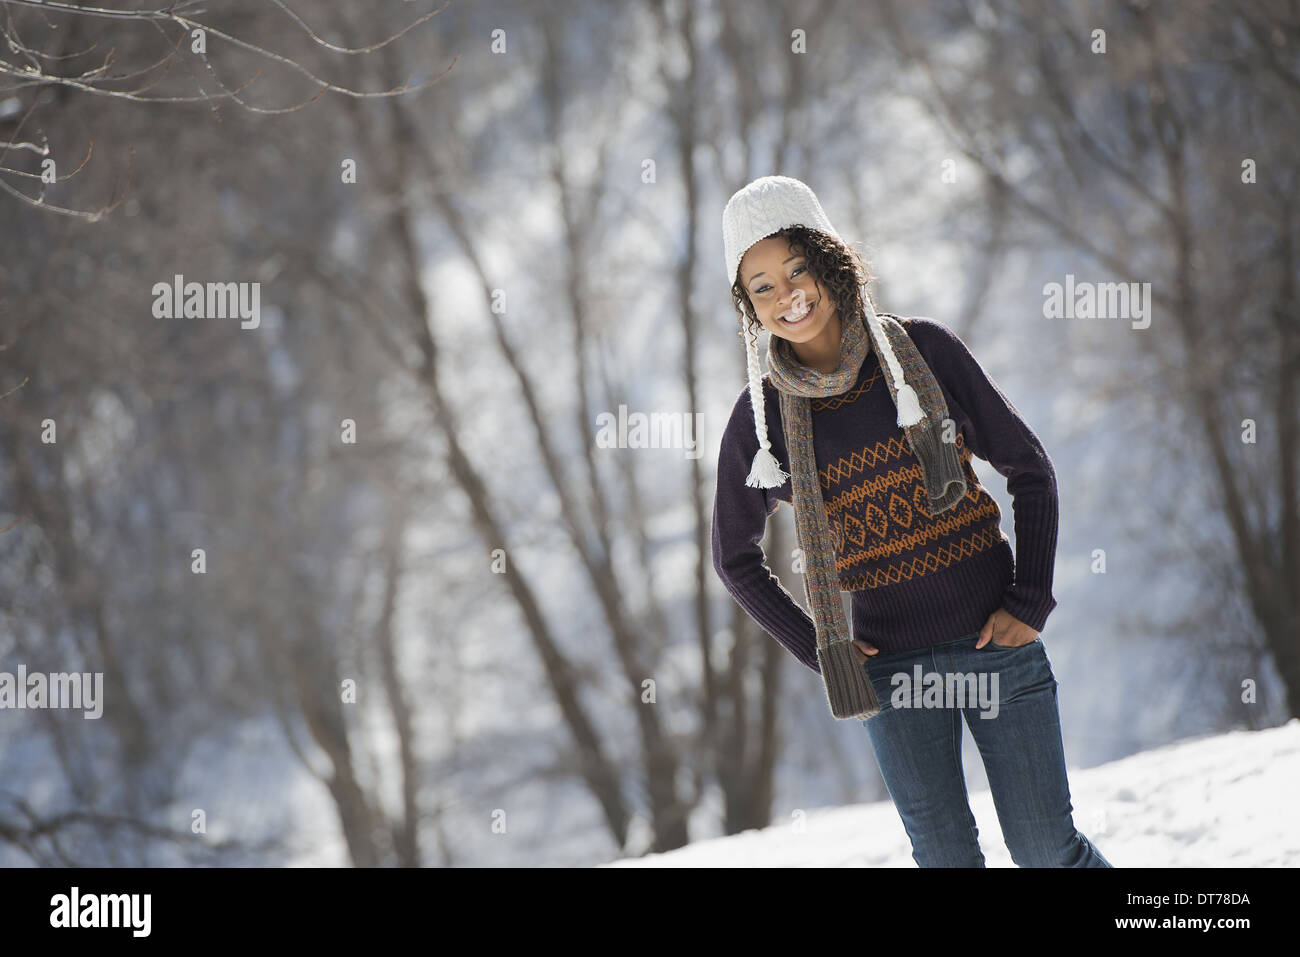 Winter scenery with snow on the ground. A young woman wearing a woolly hat. - Stock Image